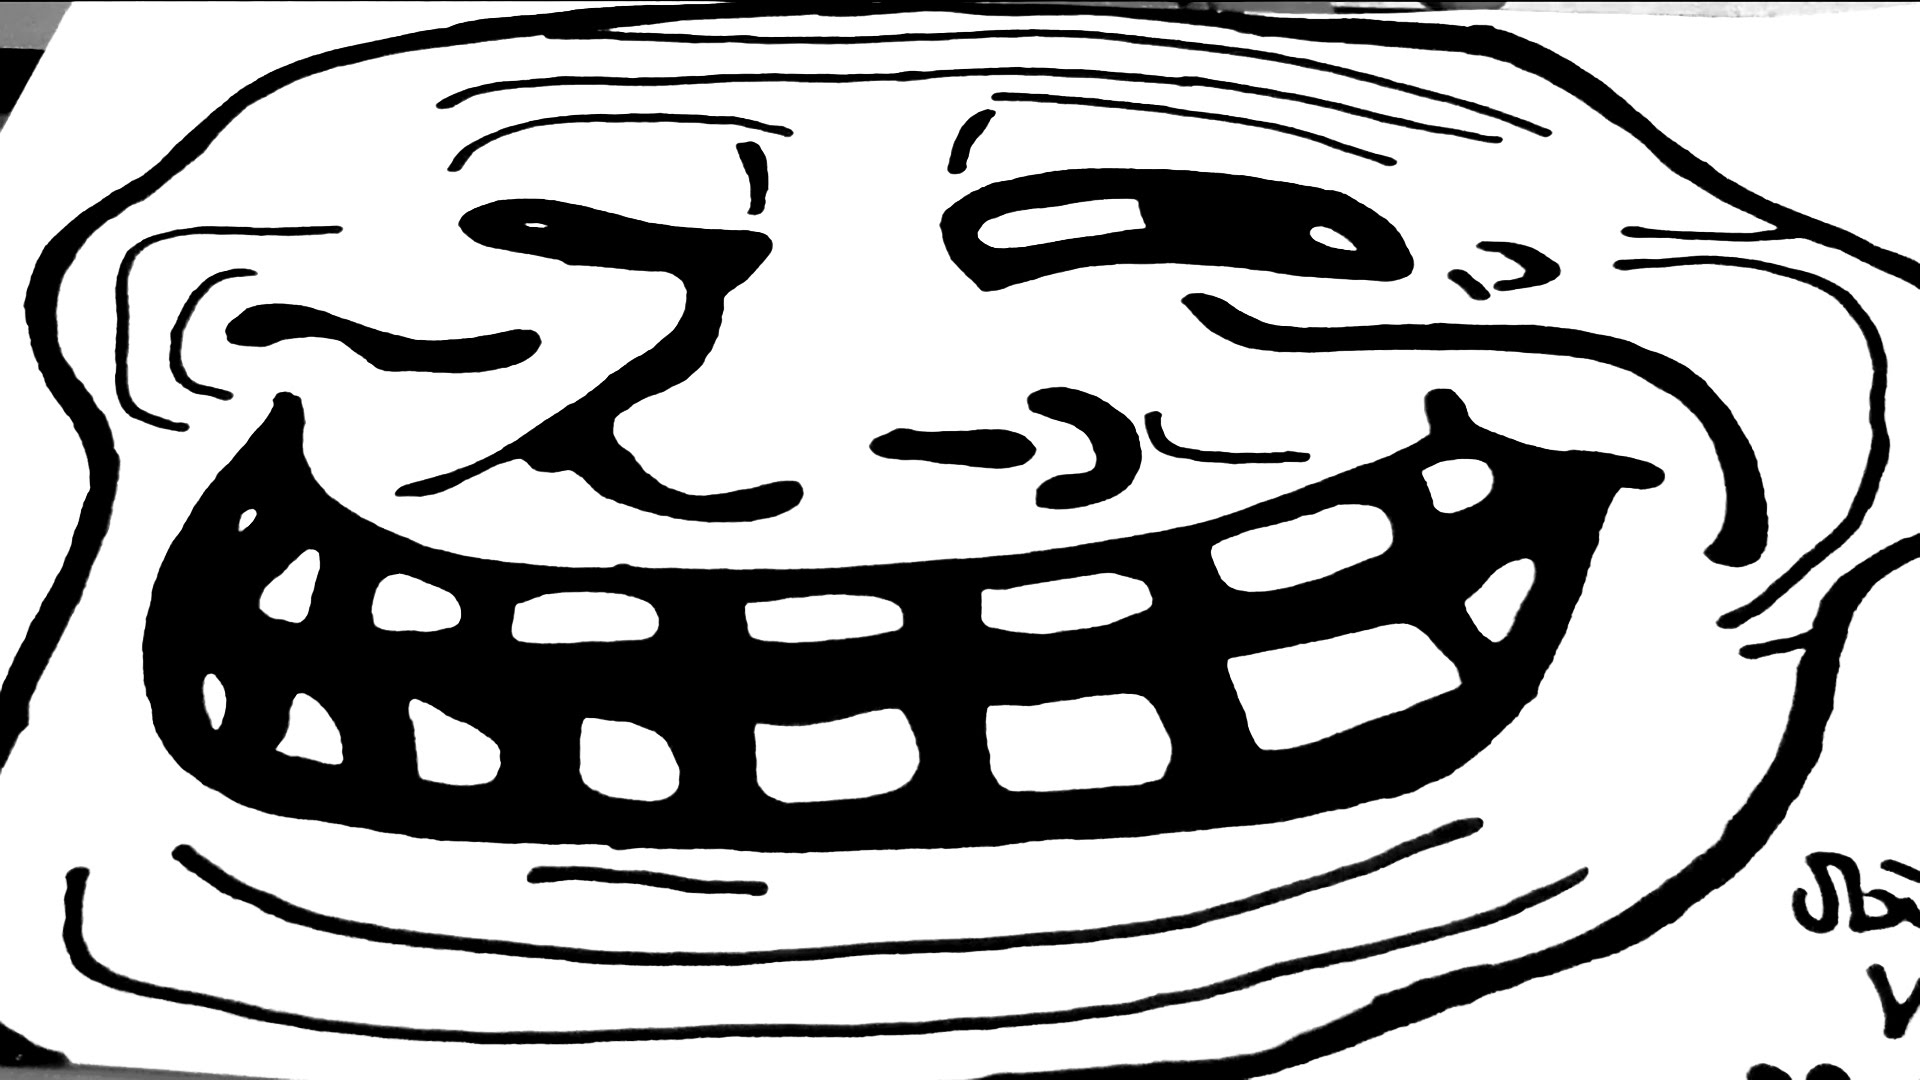 1920x1080 How To Draw Memes Meme Faces Easy A Troll Face With Pencil